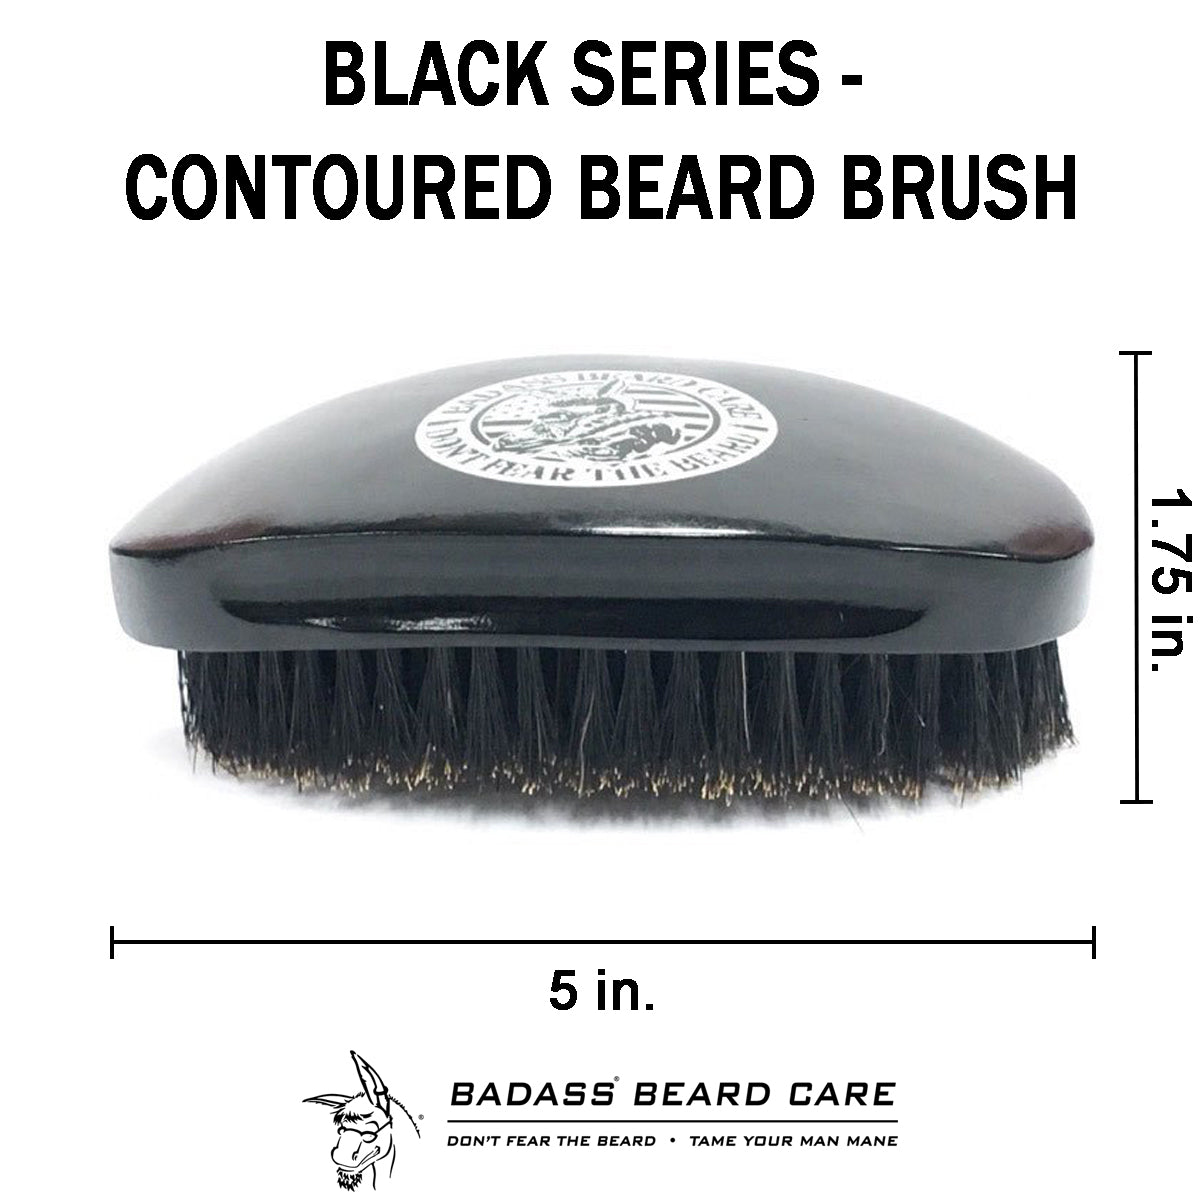 Black Series - Contoured Beard Brush